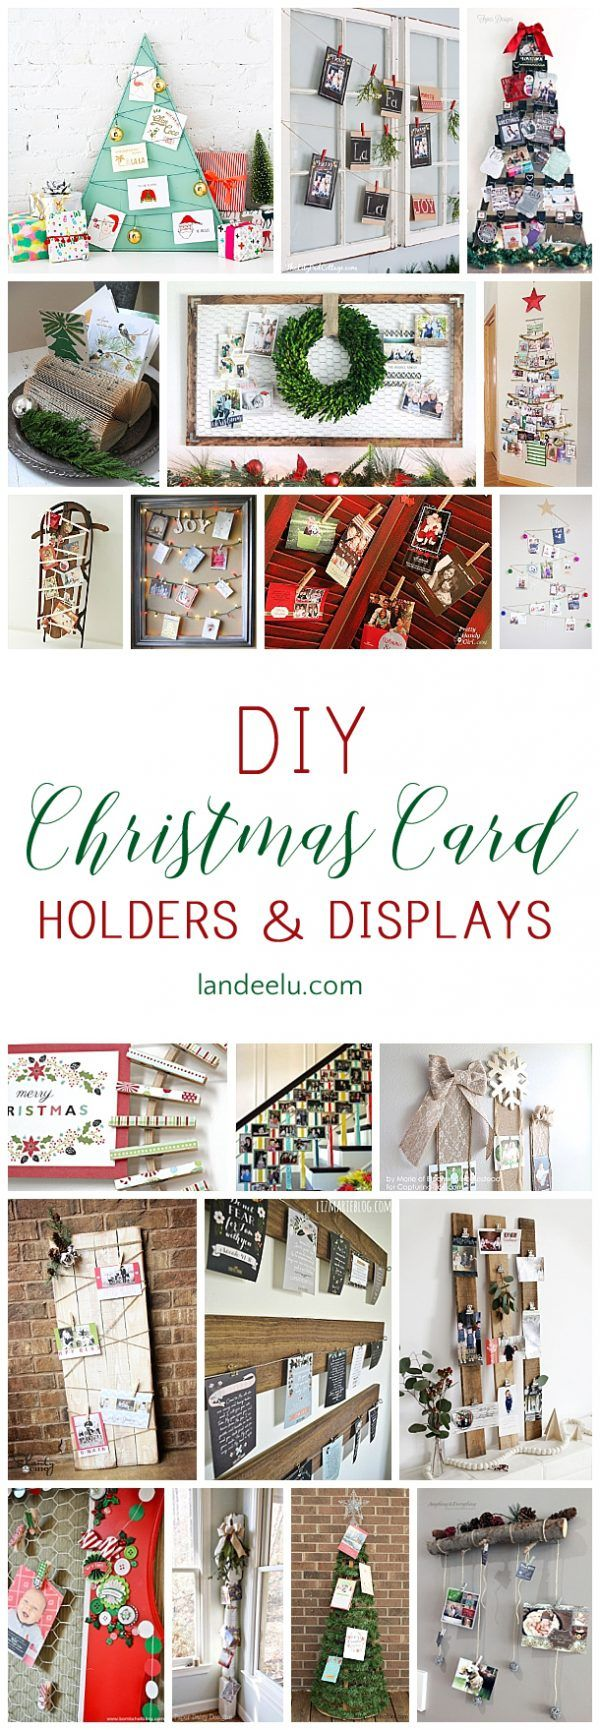 diy christmas card holder and display ideas